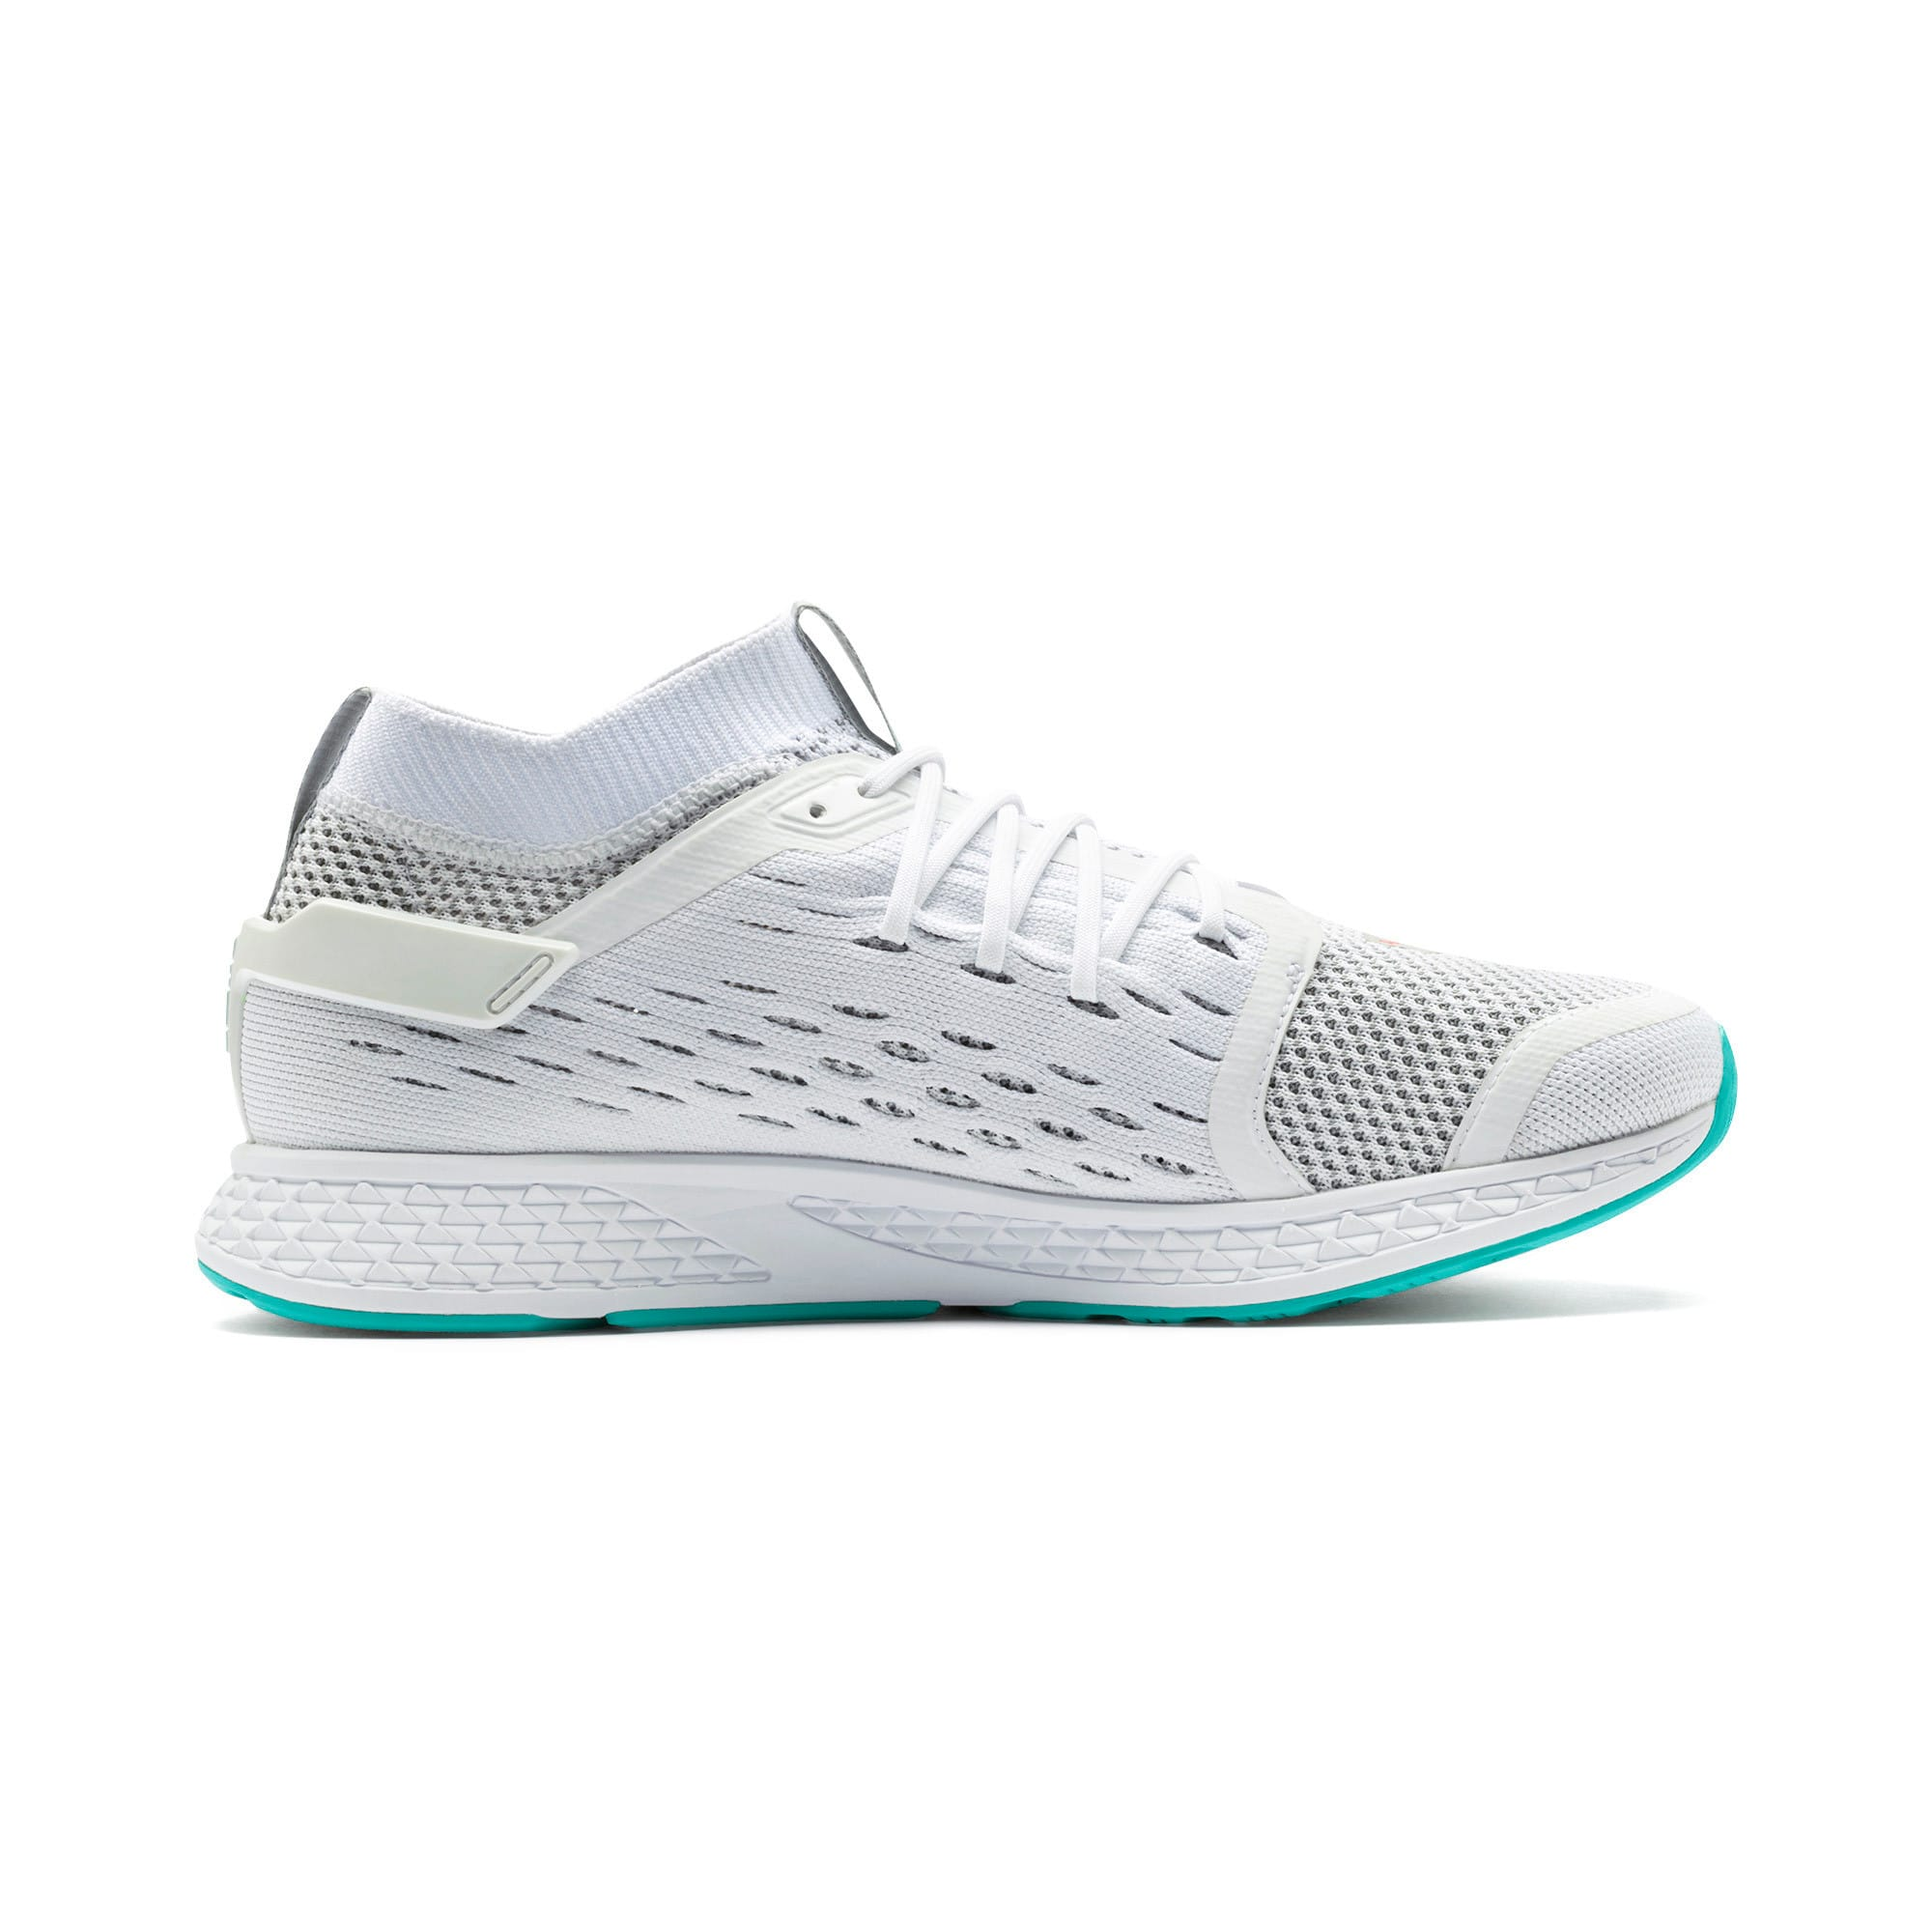 Thumbnail 6 of SPEED 500 Men's Running Shoes, White-Turquoise-Nrgy Red, medium